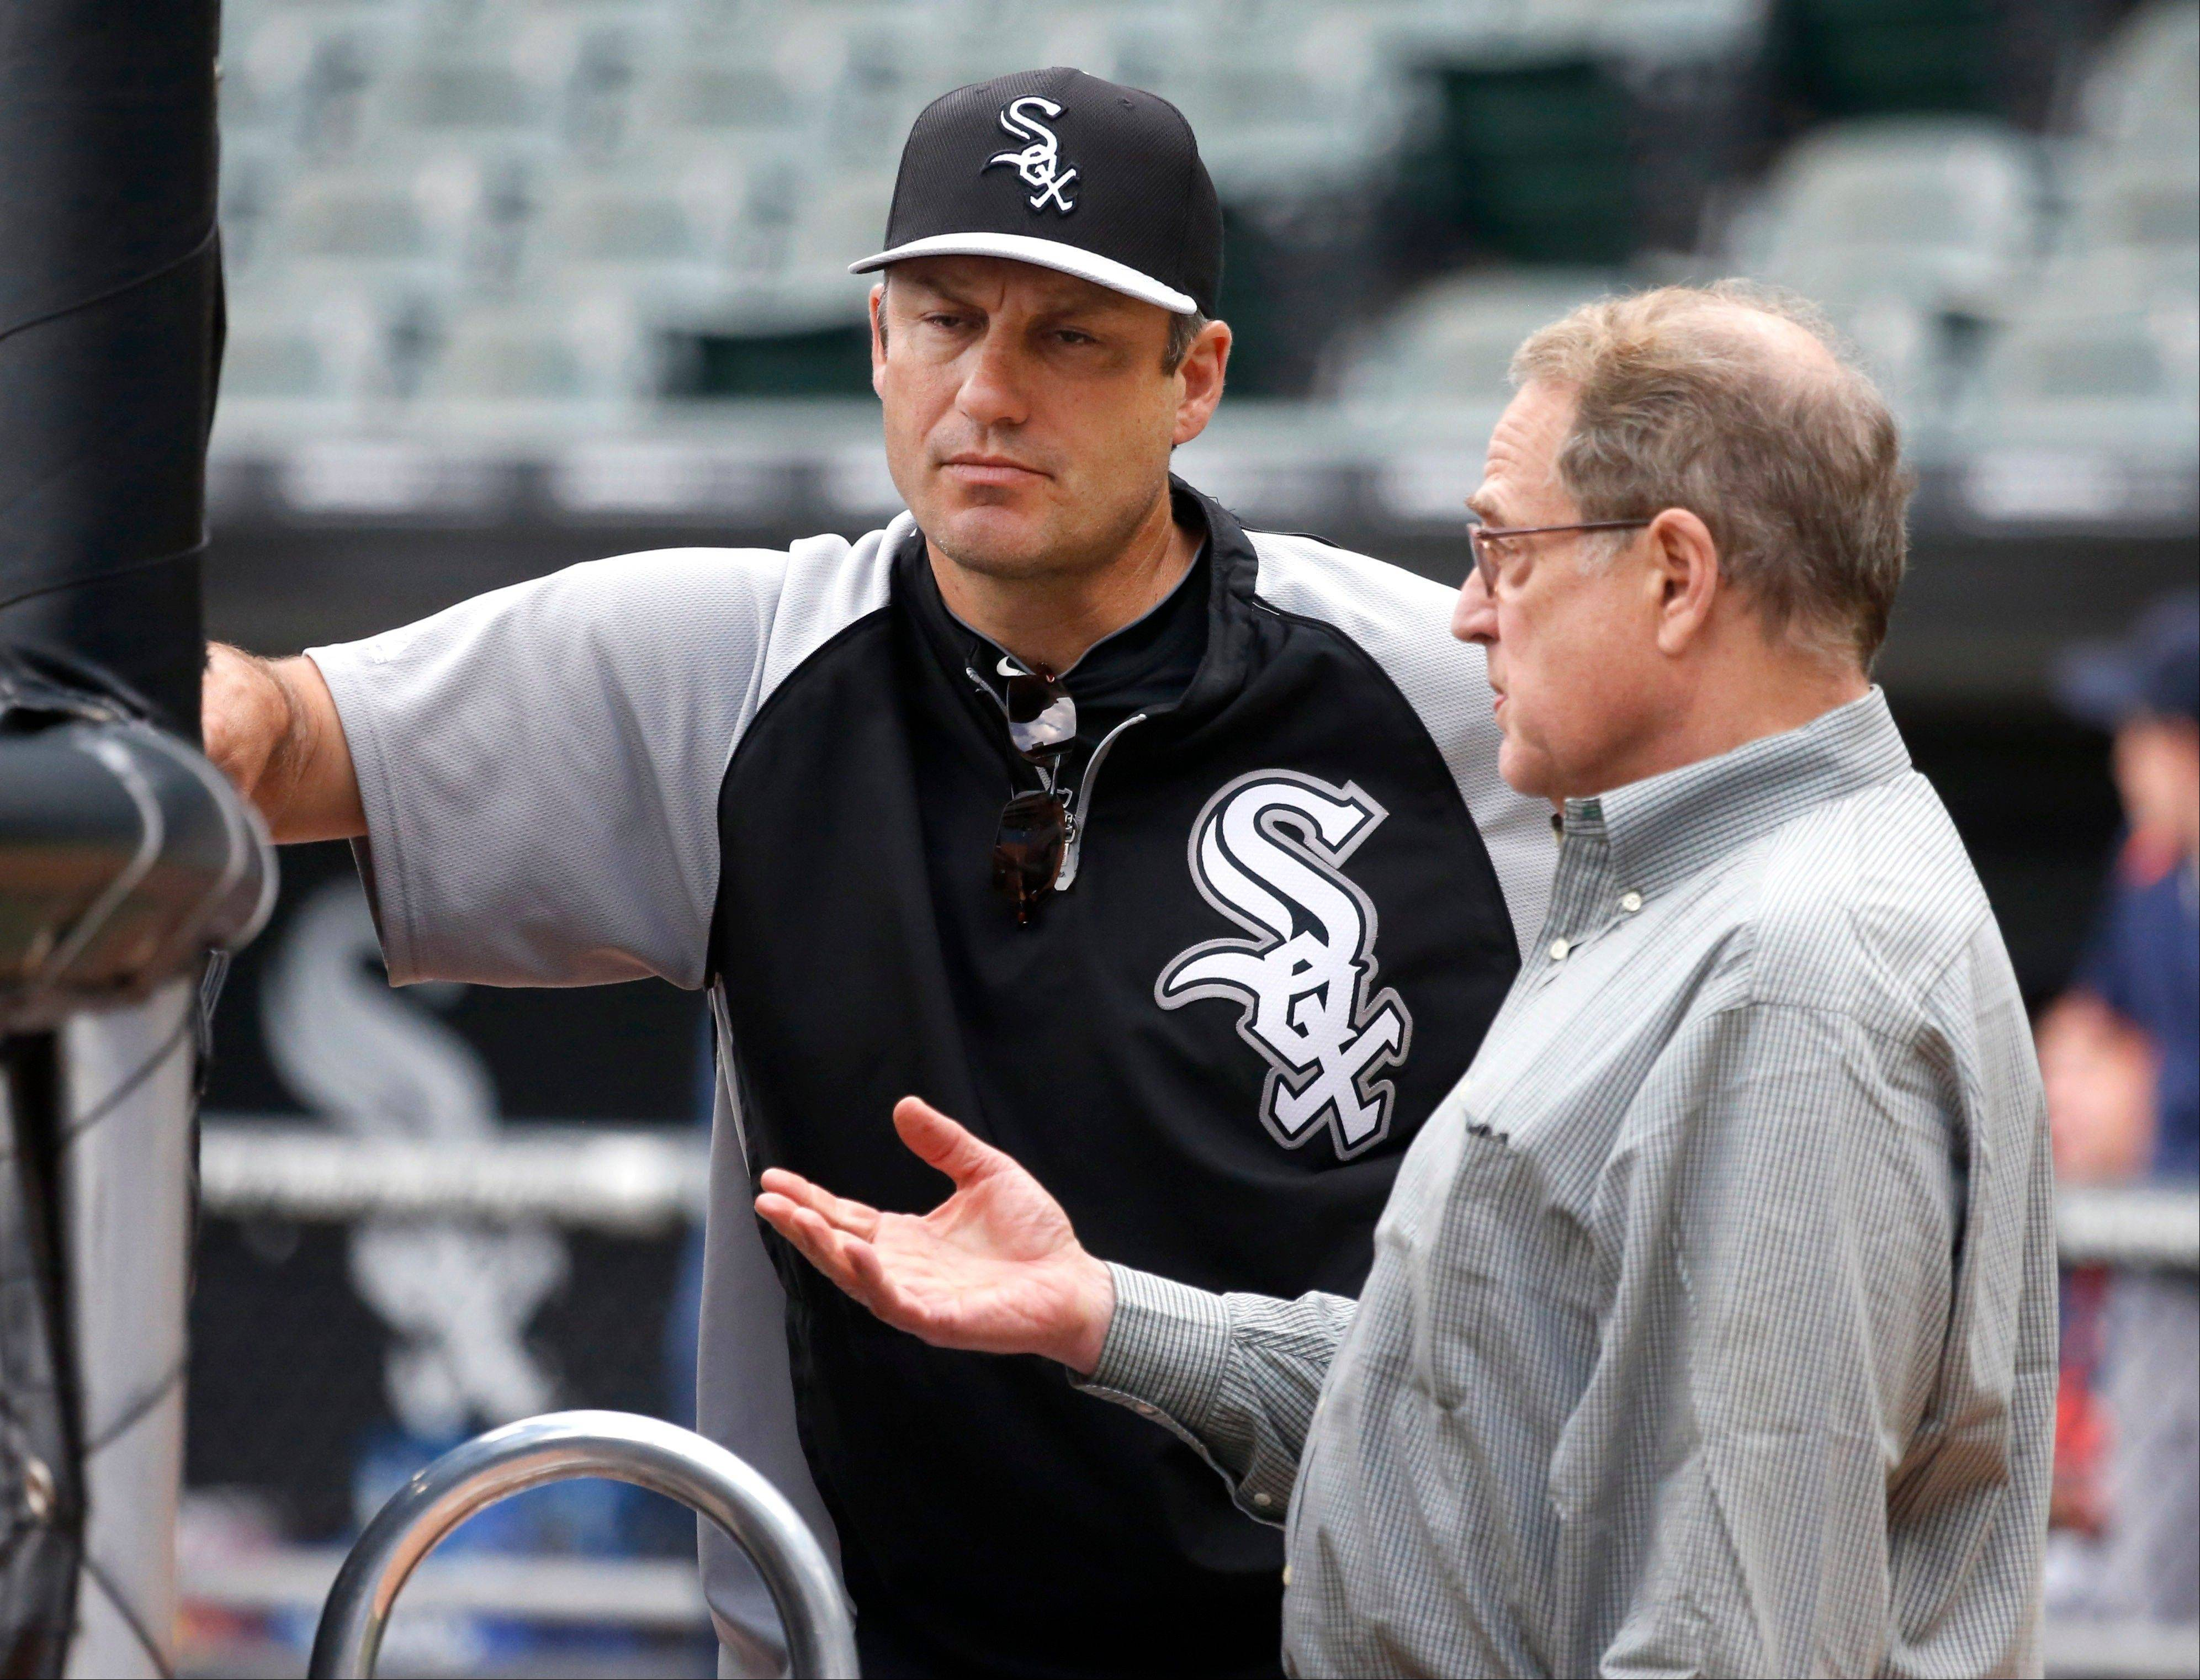 White Sox manager Robin Ventura listens to club chairman Jerry Reinsdorf during batting practice before Tuesday's game against the Detroit Tigers.